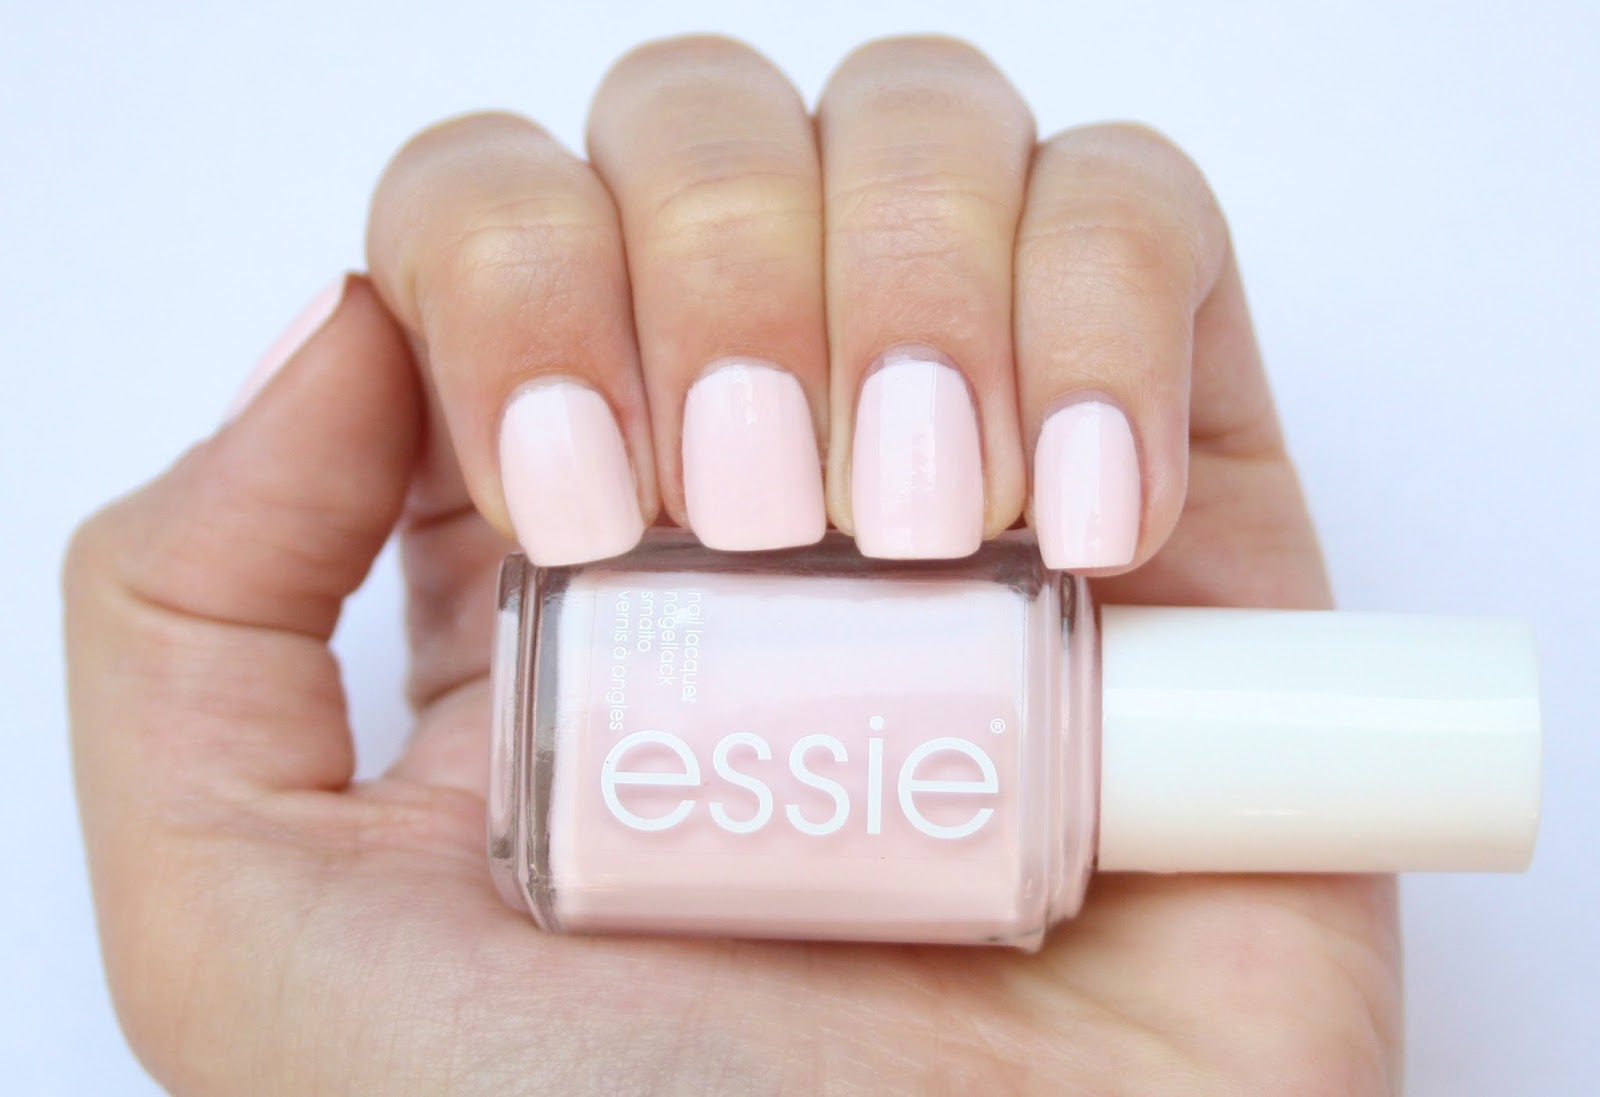 I Love Essie Nail Polish But It Ears Ll Be Looking For A New Company Unfortunately Peta Discovered They Are In Fact Testing On